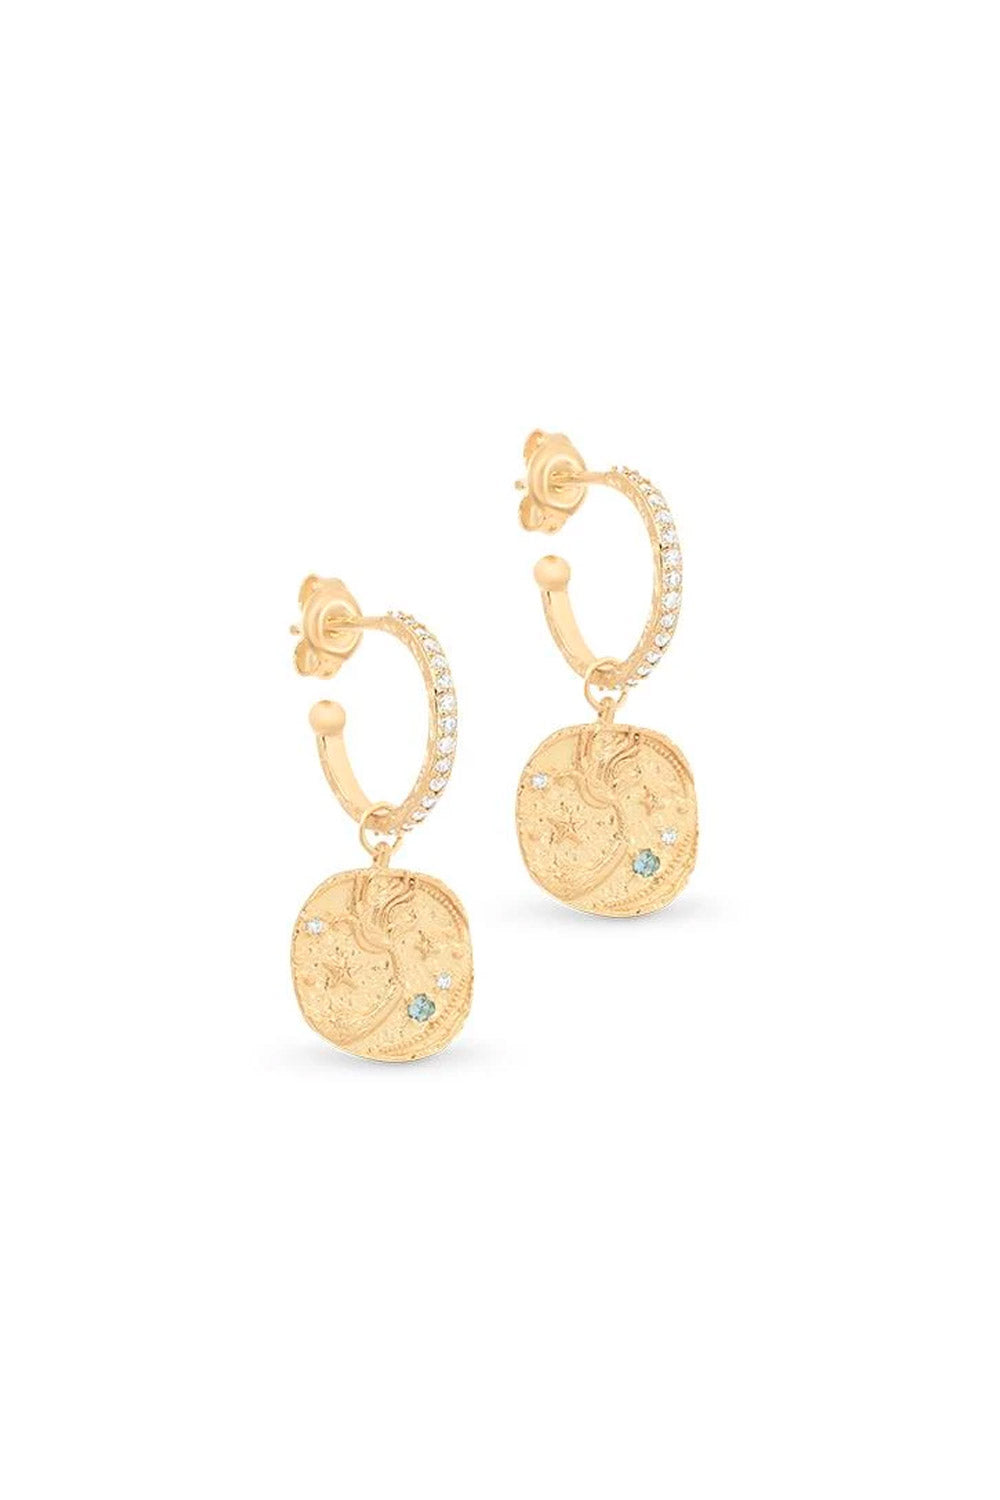 By Charlotte ~ Goddess of Water Hoops in Gold